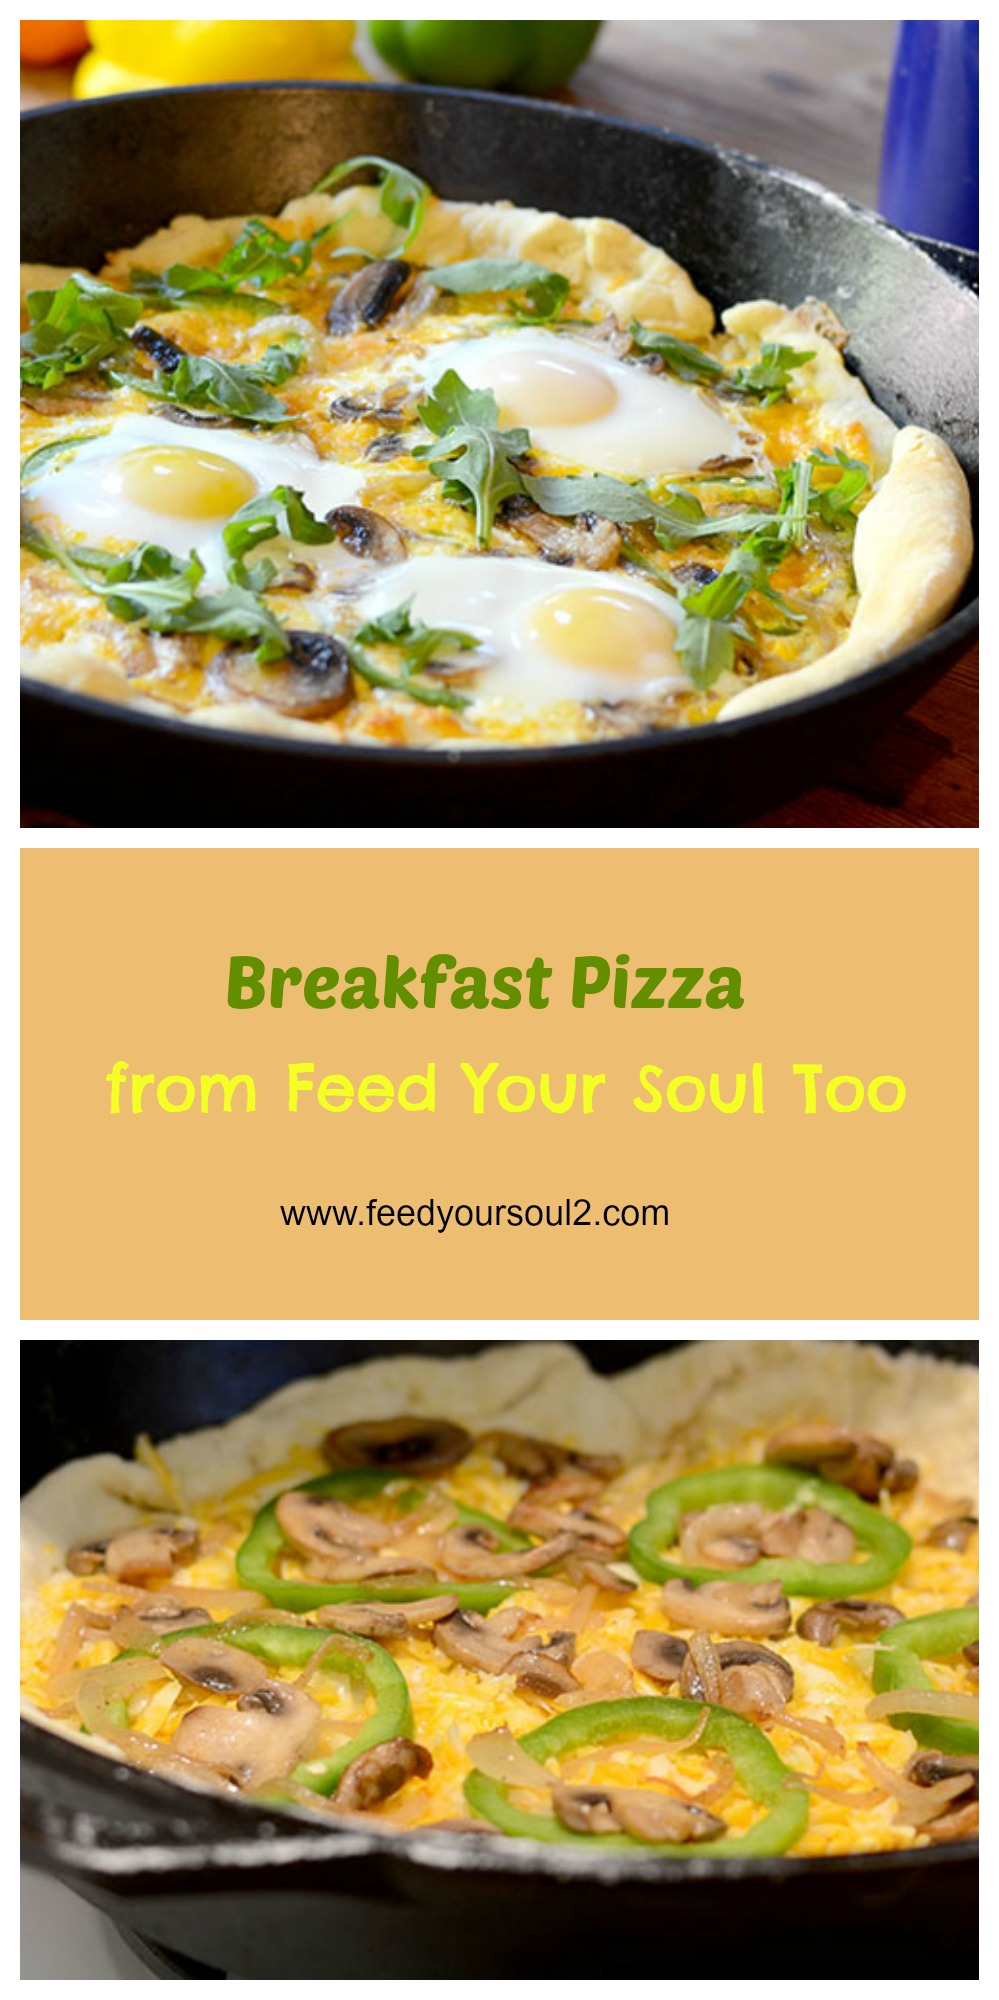 Breakfast Pizza #breakfast #pizza #vegetarian | feedyoursoul2.com